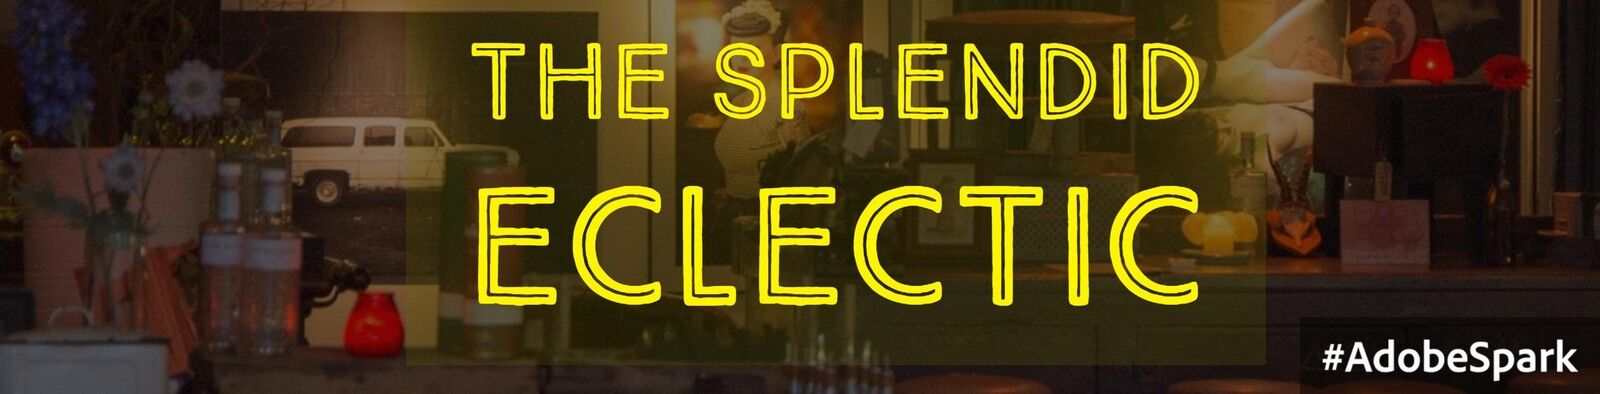 The Splendid Eclectic